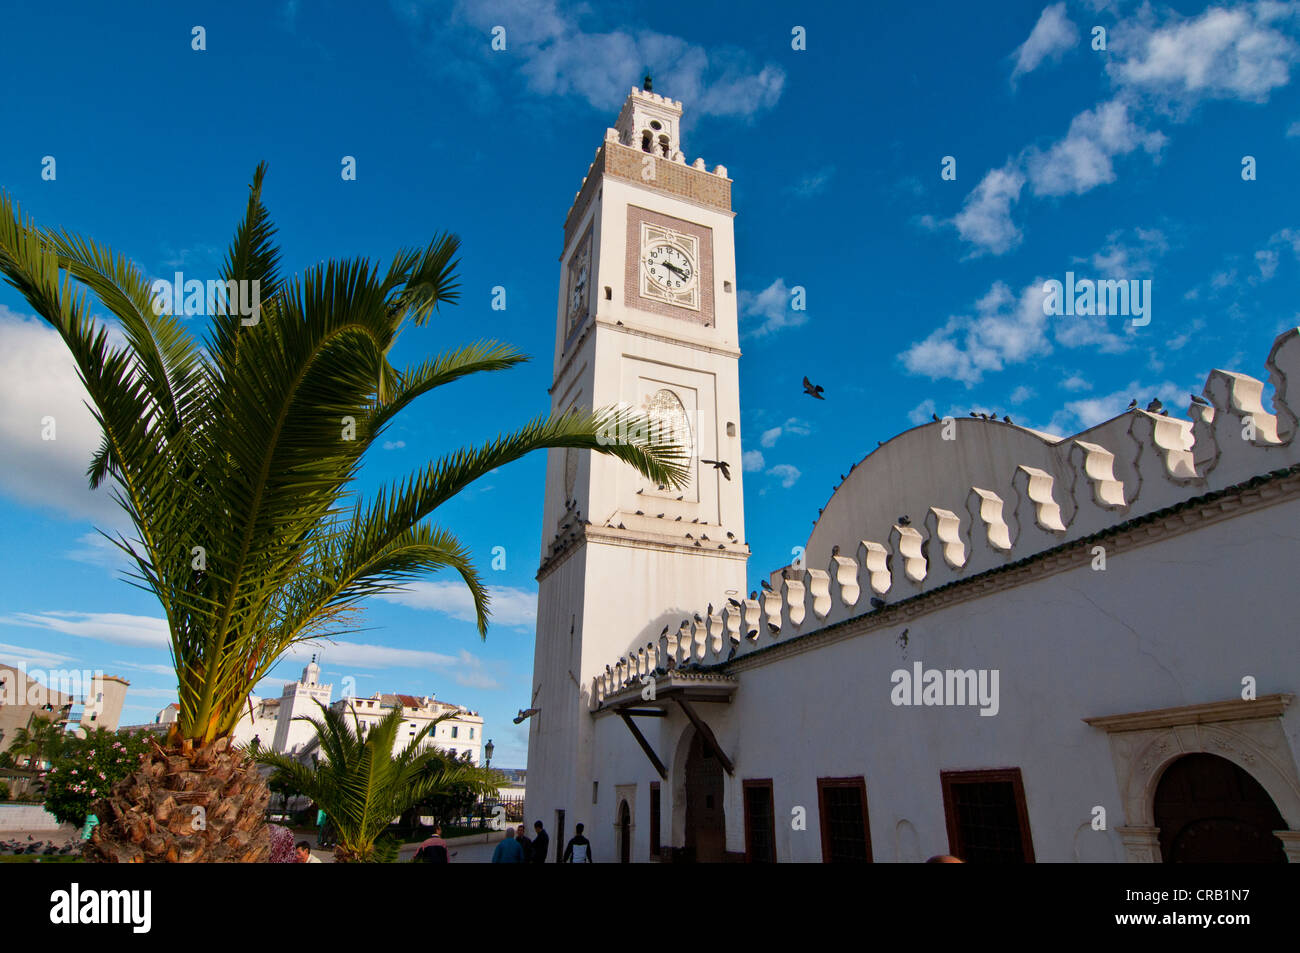 Mosque Jamaa-el-Jedid or Mosque of the Fishermen on Martyrs' Square in Algiers, Algeria, Africa - Stock Image